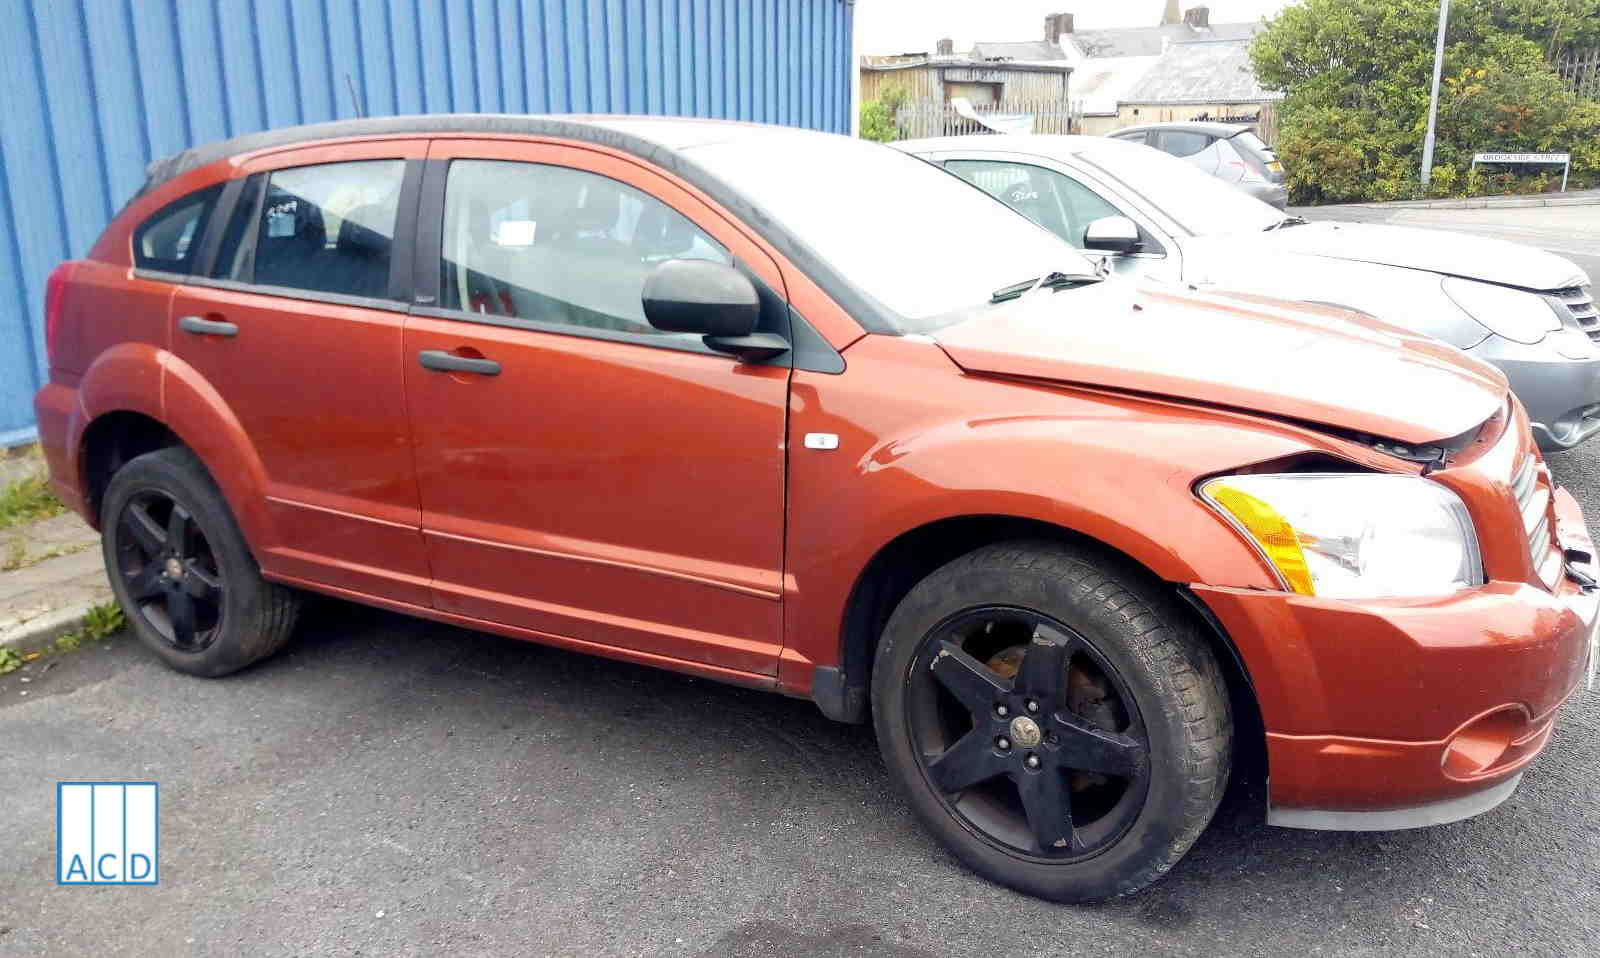 Dodge Caliber 2.0L Petrol parts for sale.